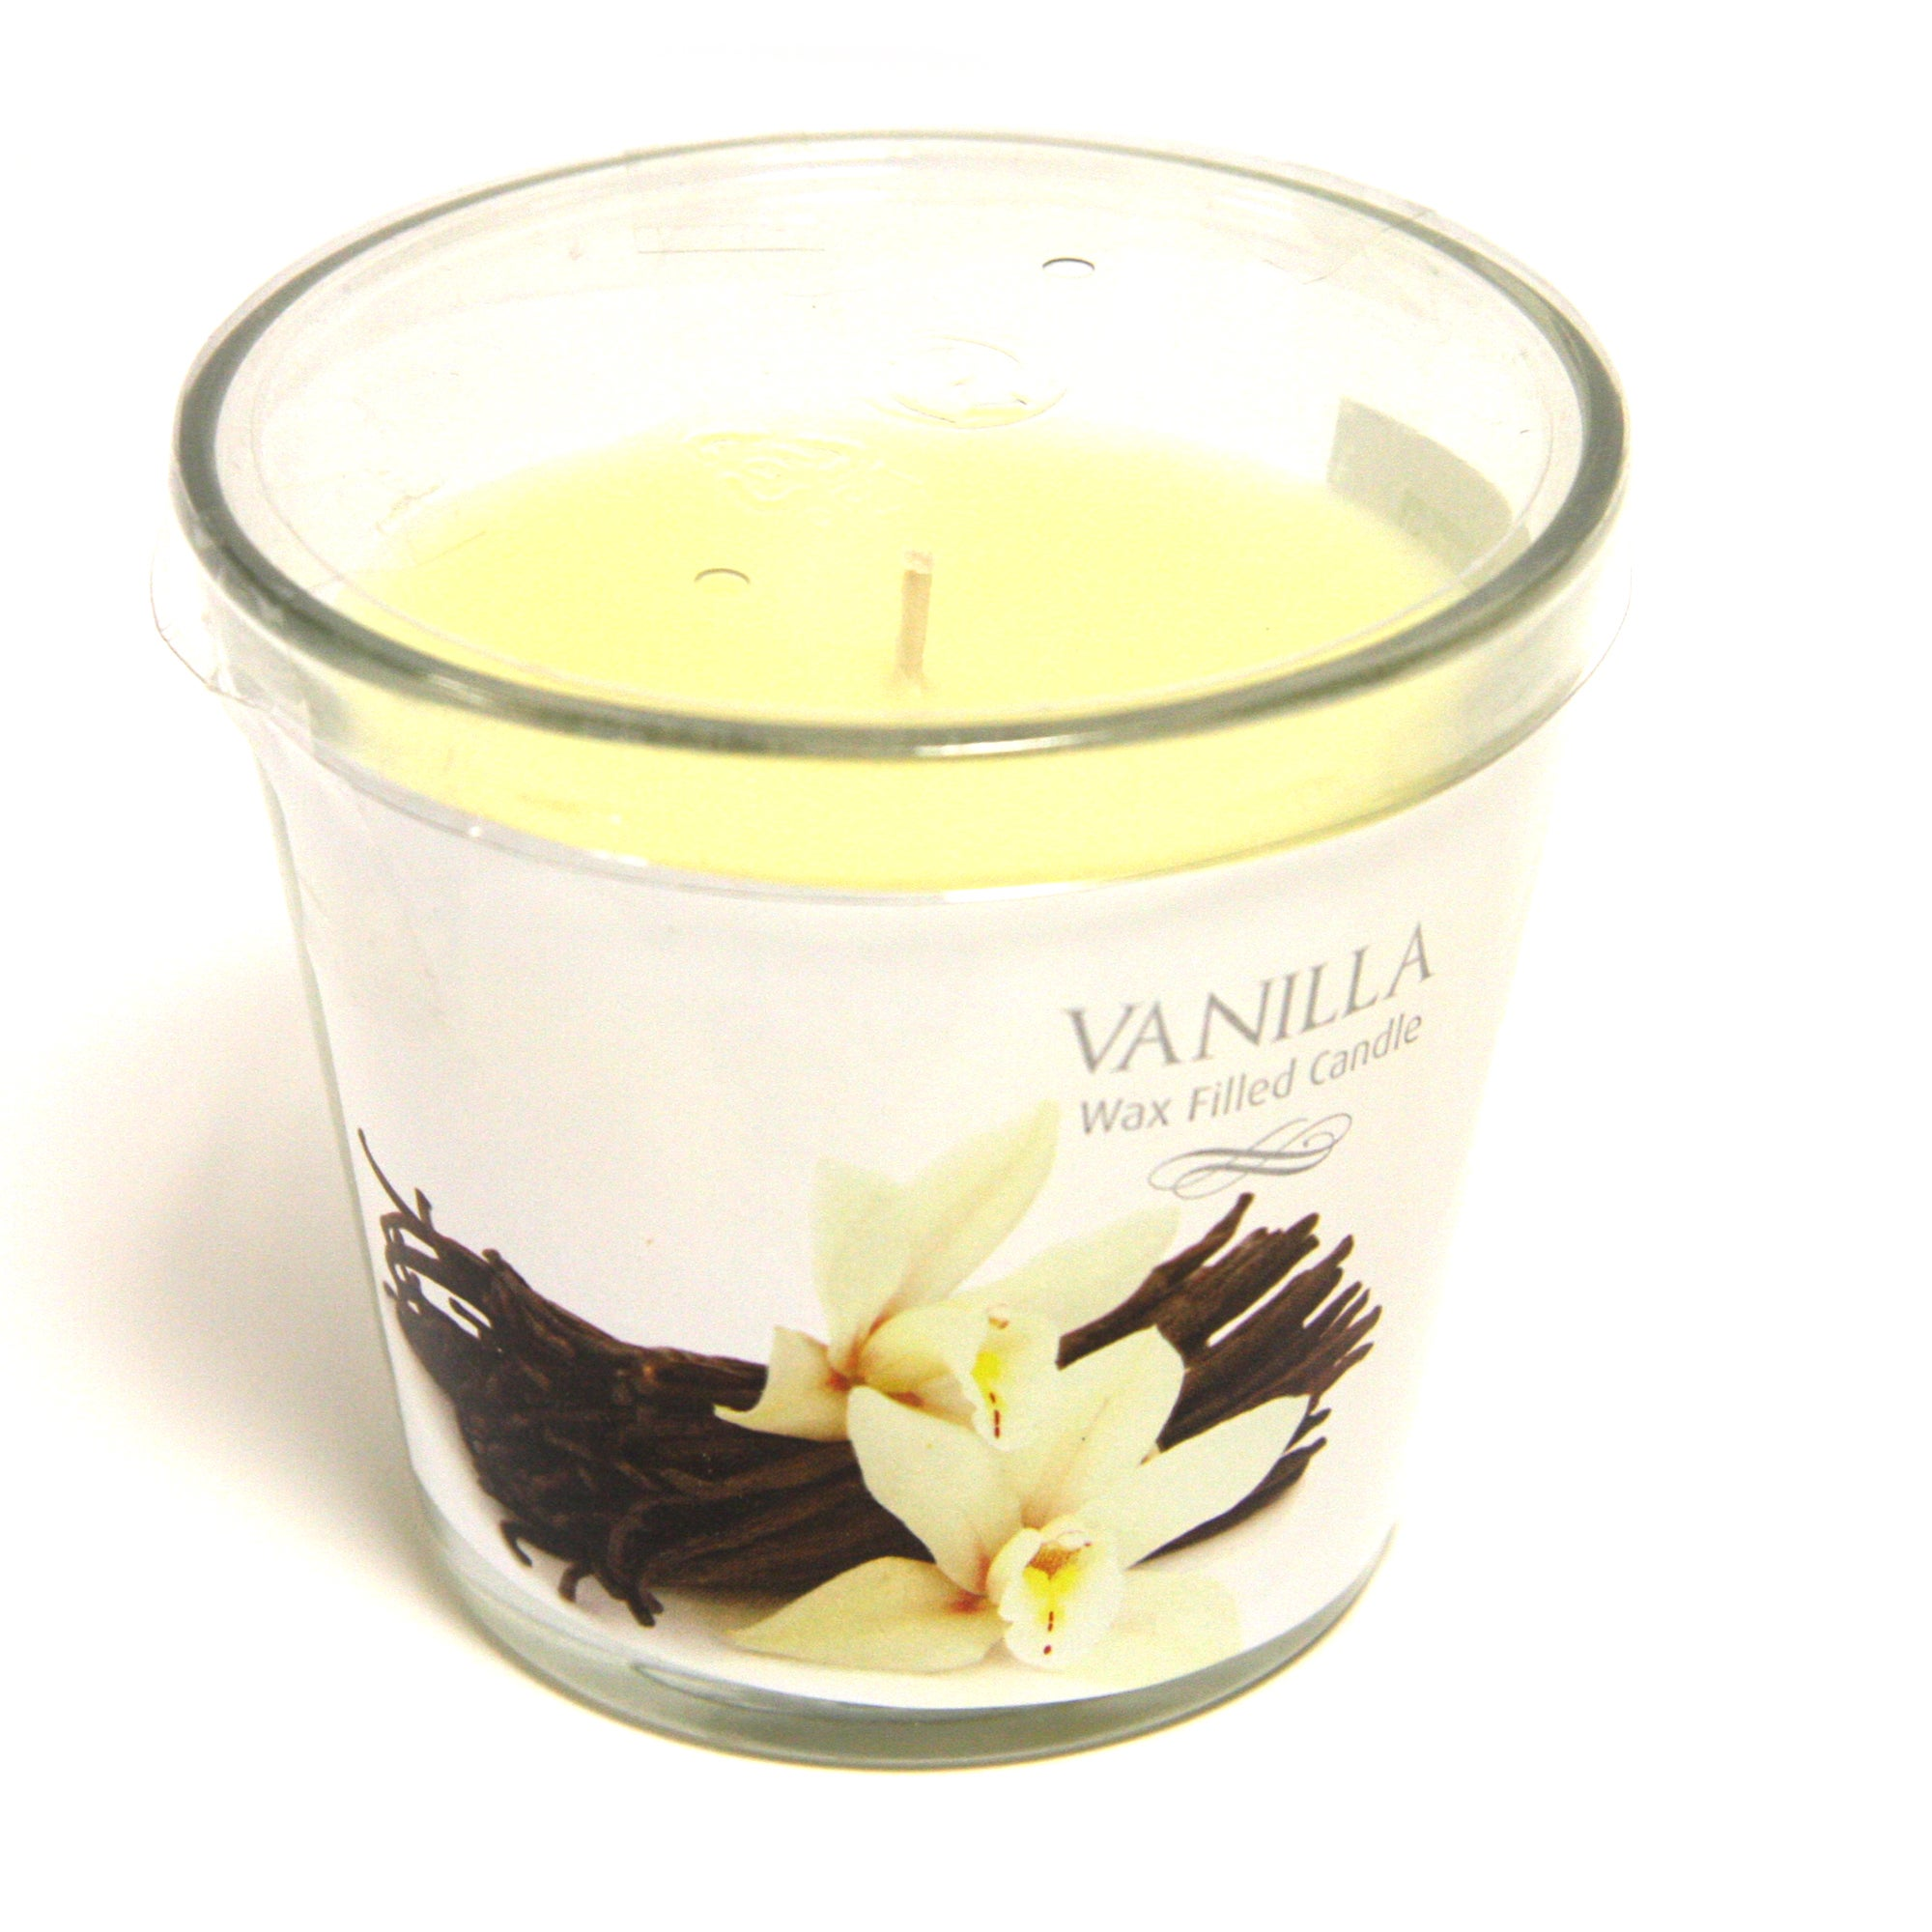 French Vanilla Wax Filled Glass Candle